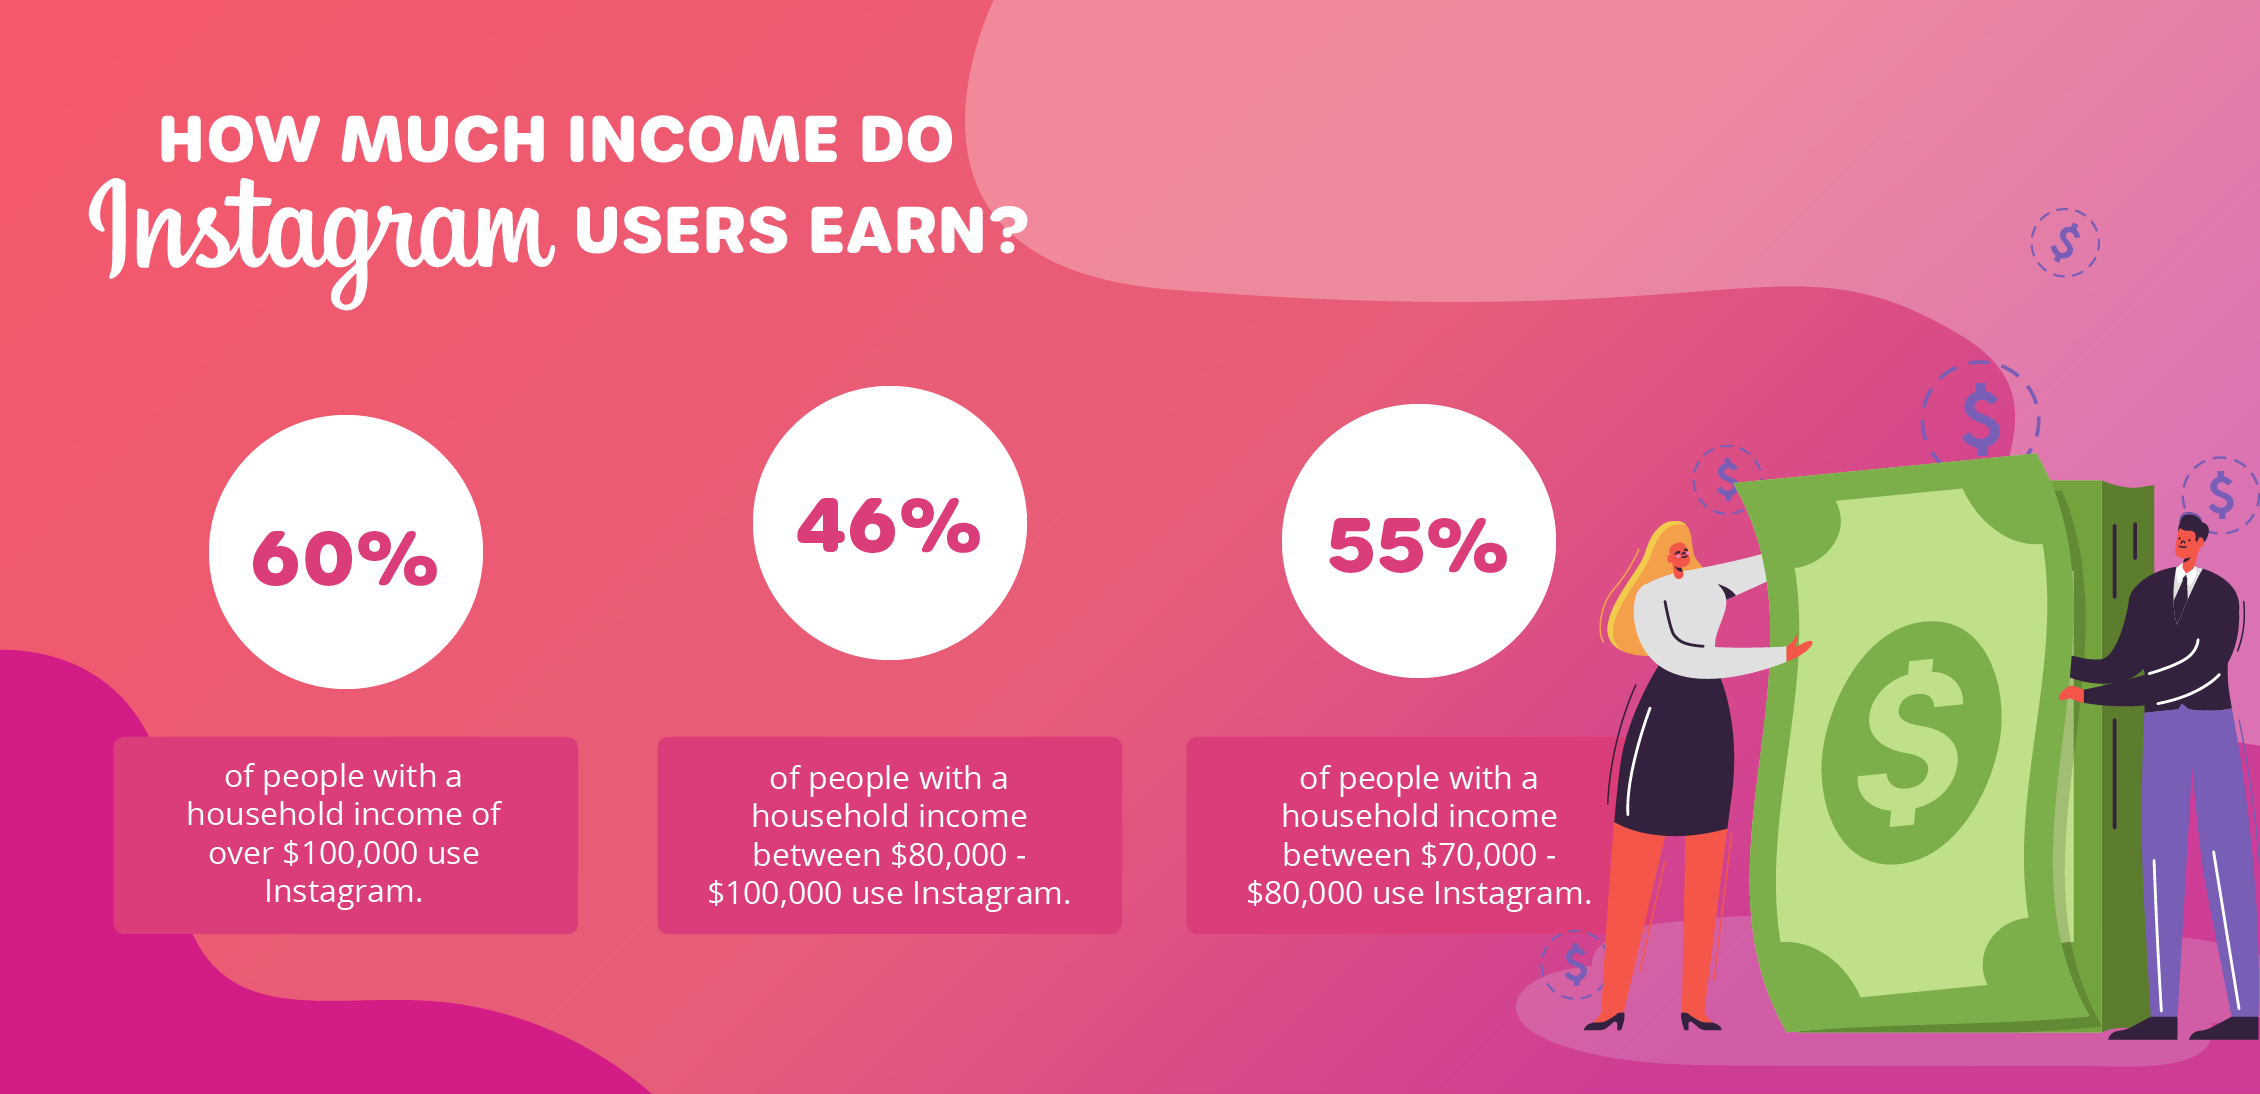 how-much-income-do-instagram-users-earn